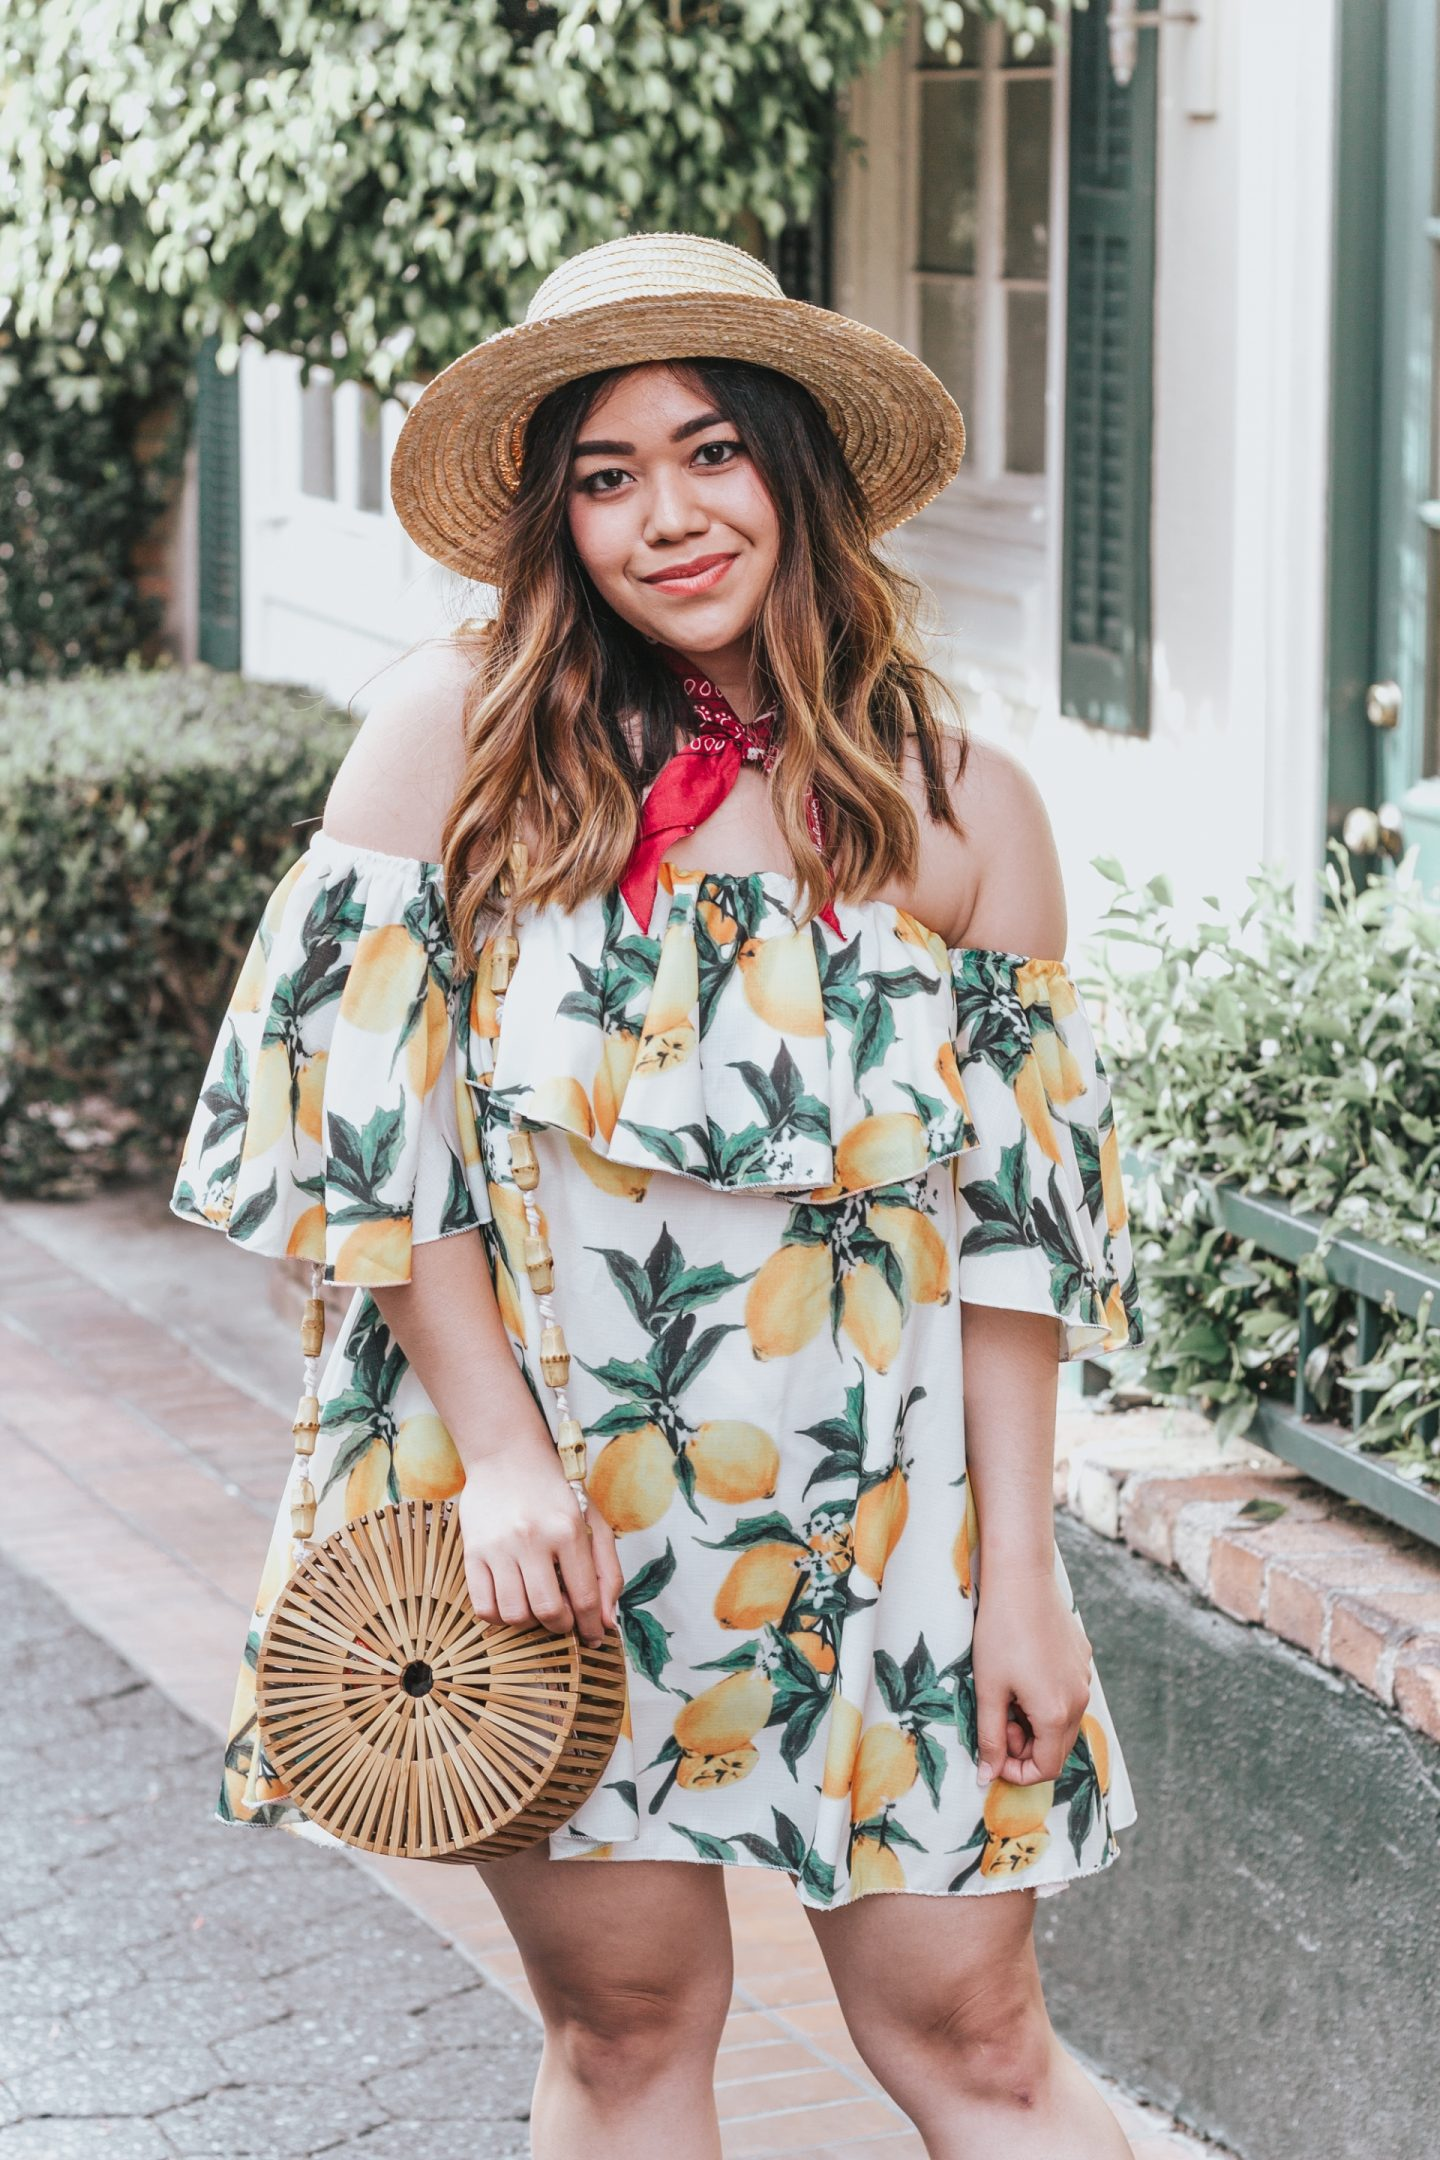 Under $50 Lemon Print Dress + Round Bamboo Bag